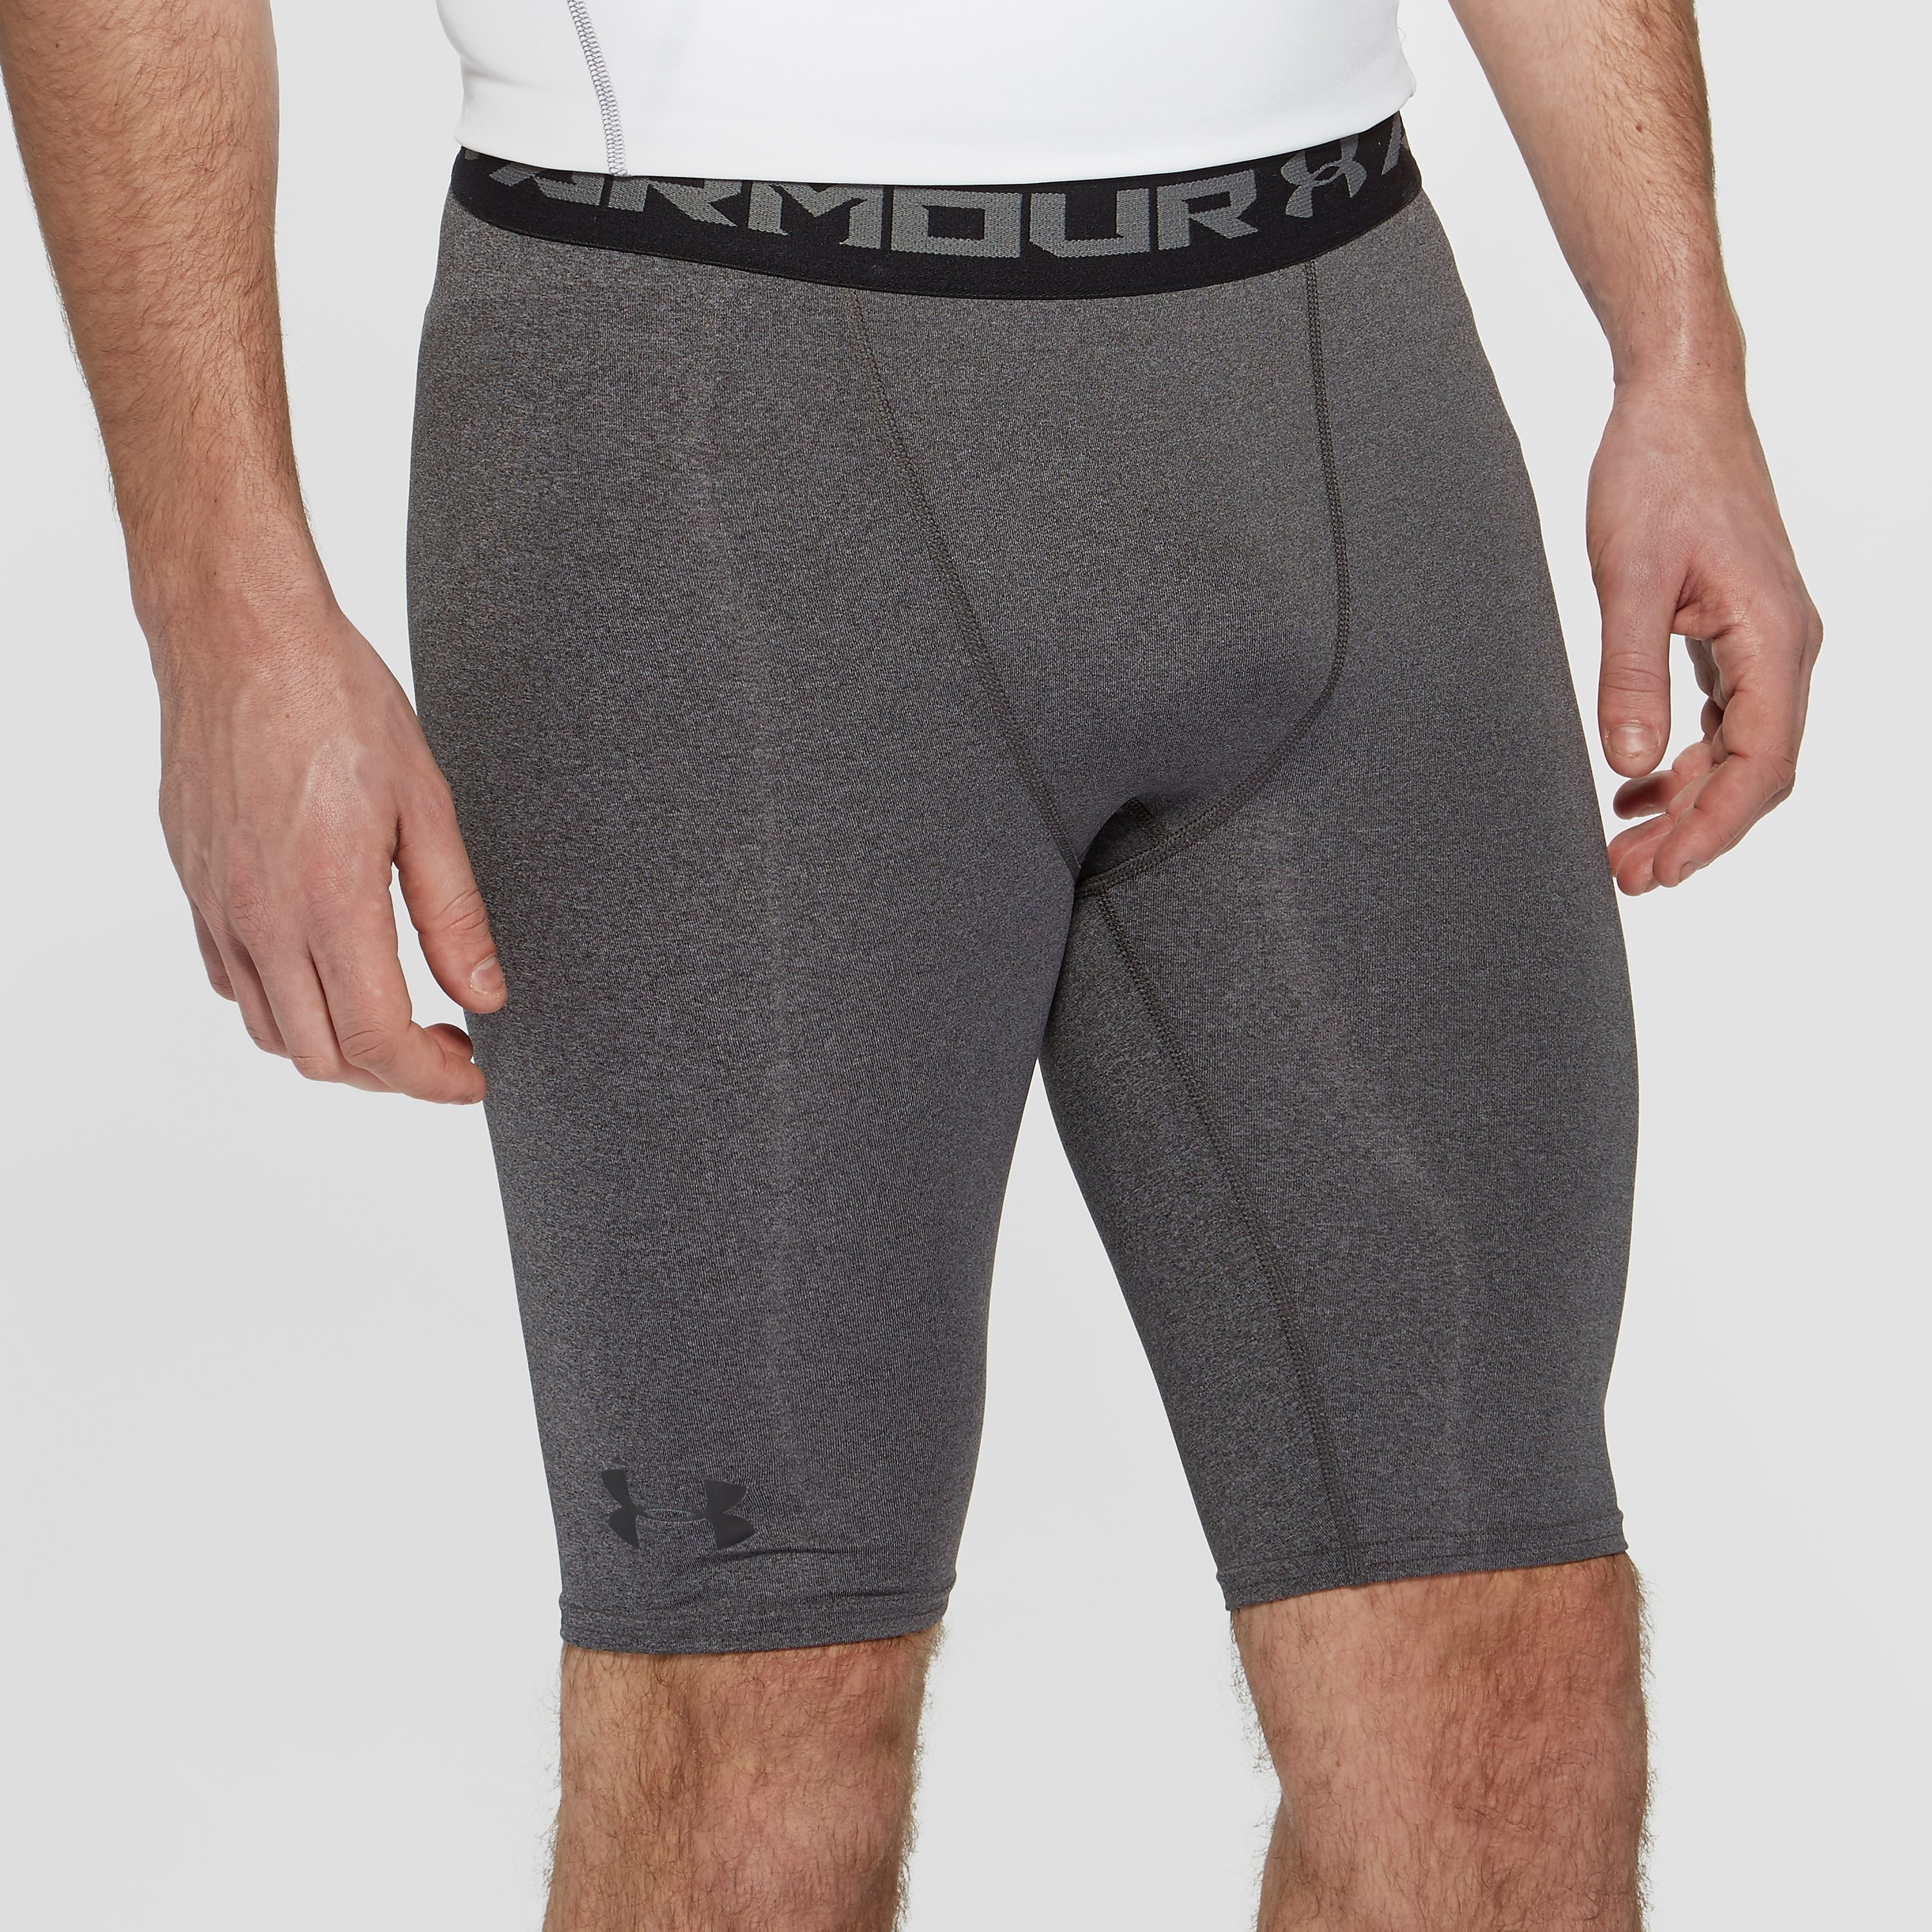 Under Armour Heat Gear Armour Men's Compression Shorts